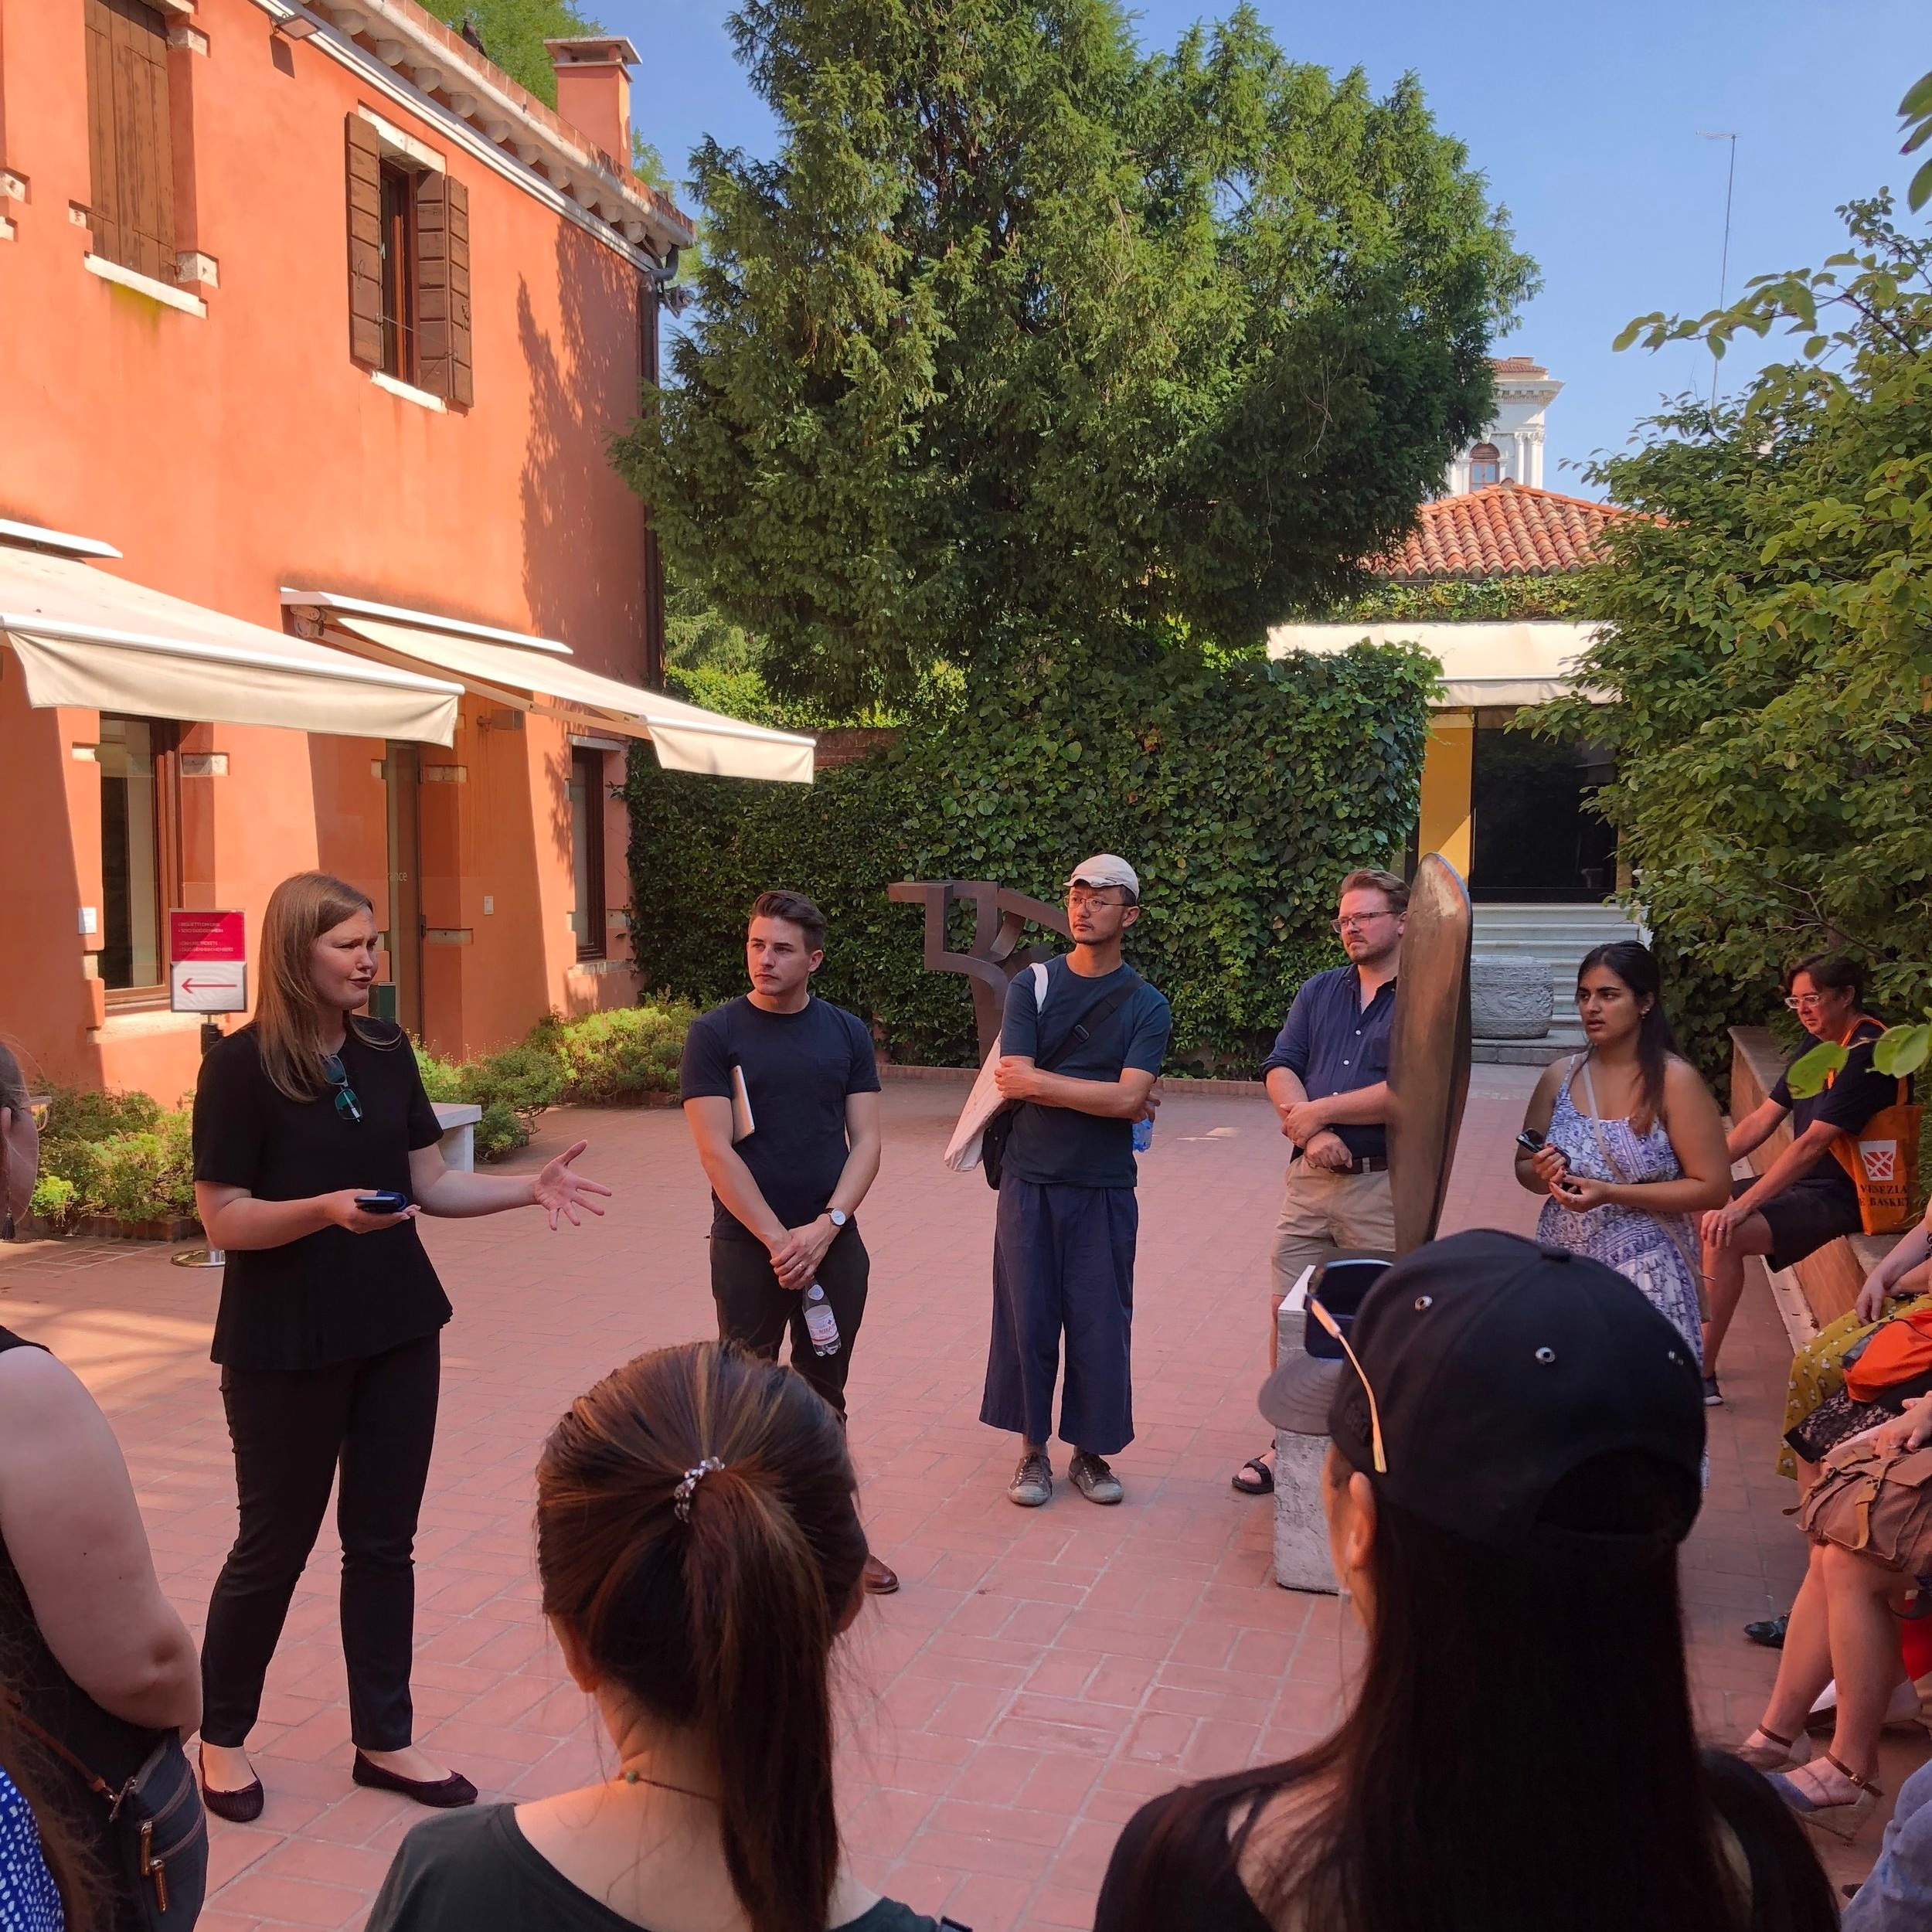 Peggy Guggenheim Collection Assistant Curator Grazina Subelyte and Andrew Kurczak introduce the collection.